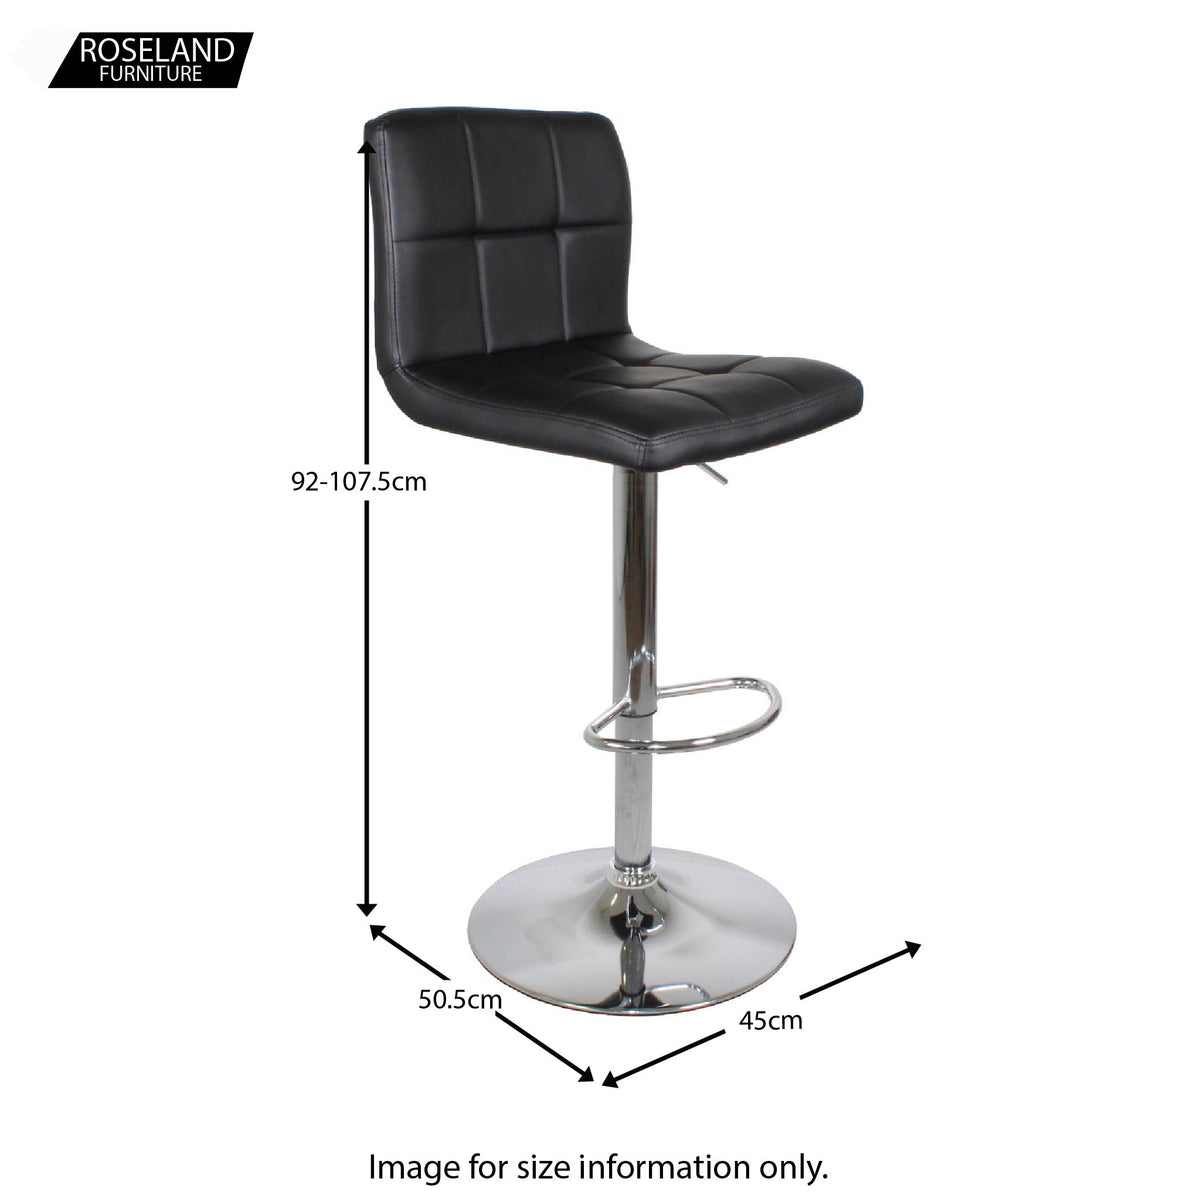 Dimensions for the Shadow Grey Elton Adjustable Breakfast Bar Stool from Roseland Furniture